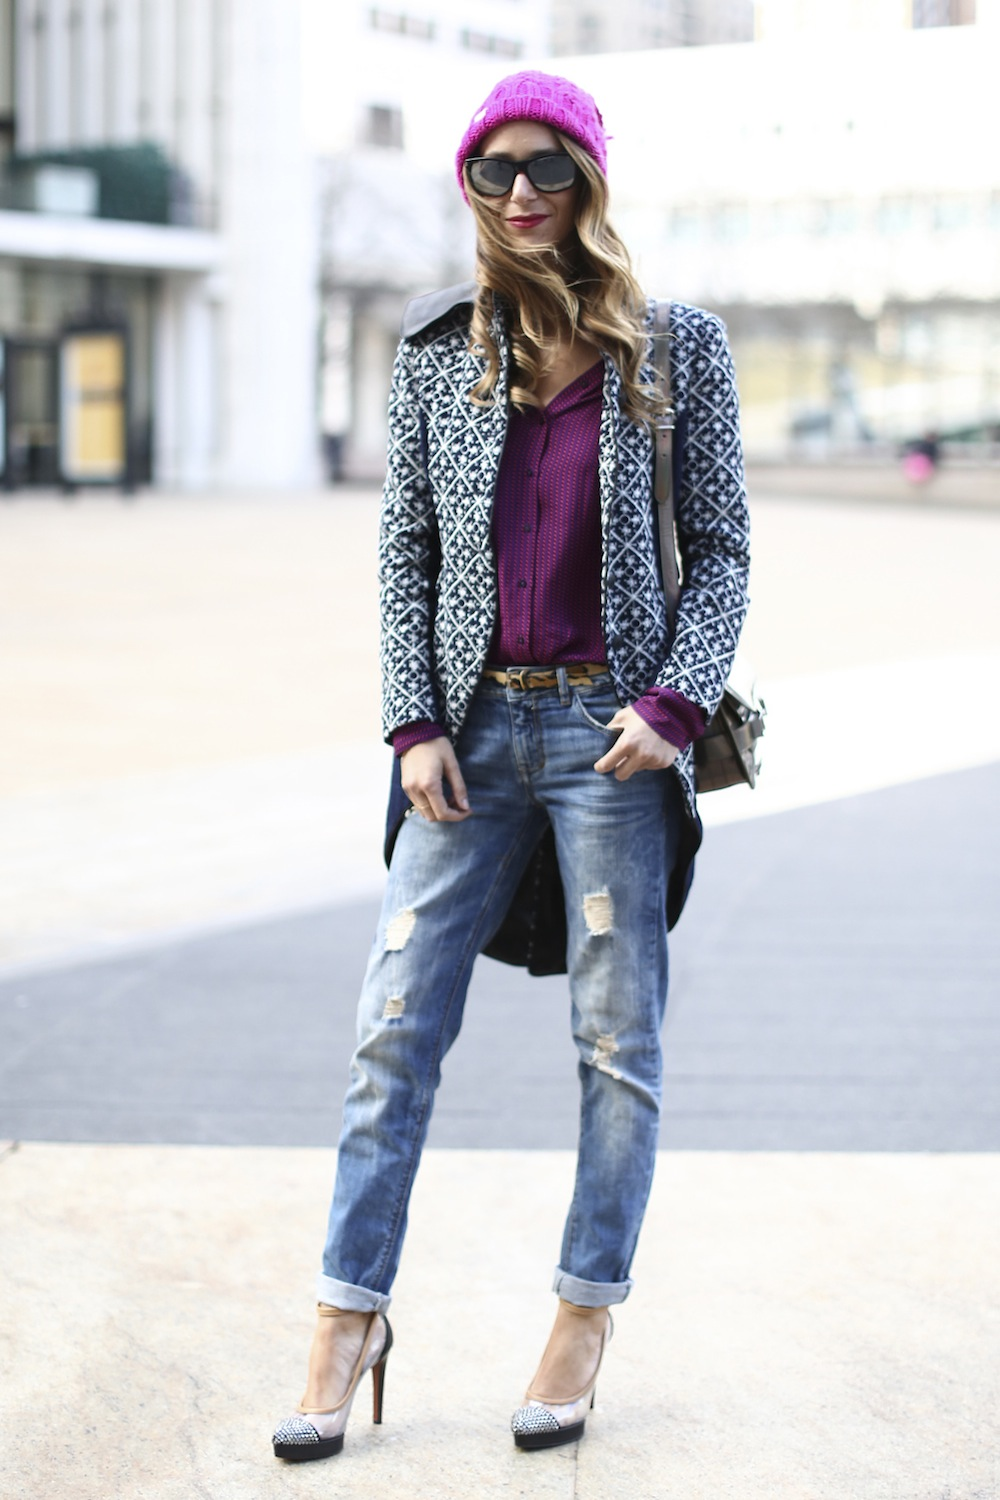 Street Style: 15 Real World Ways to Wear Ripped Jeans - theFashionSpot